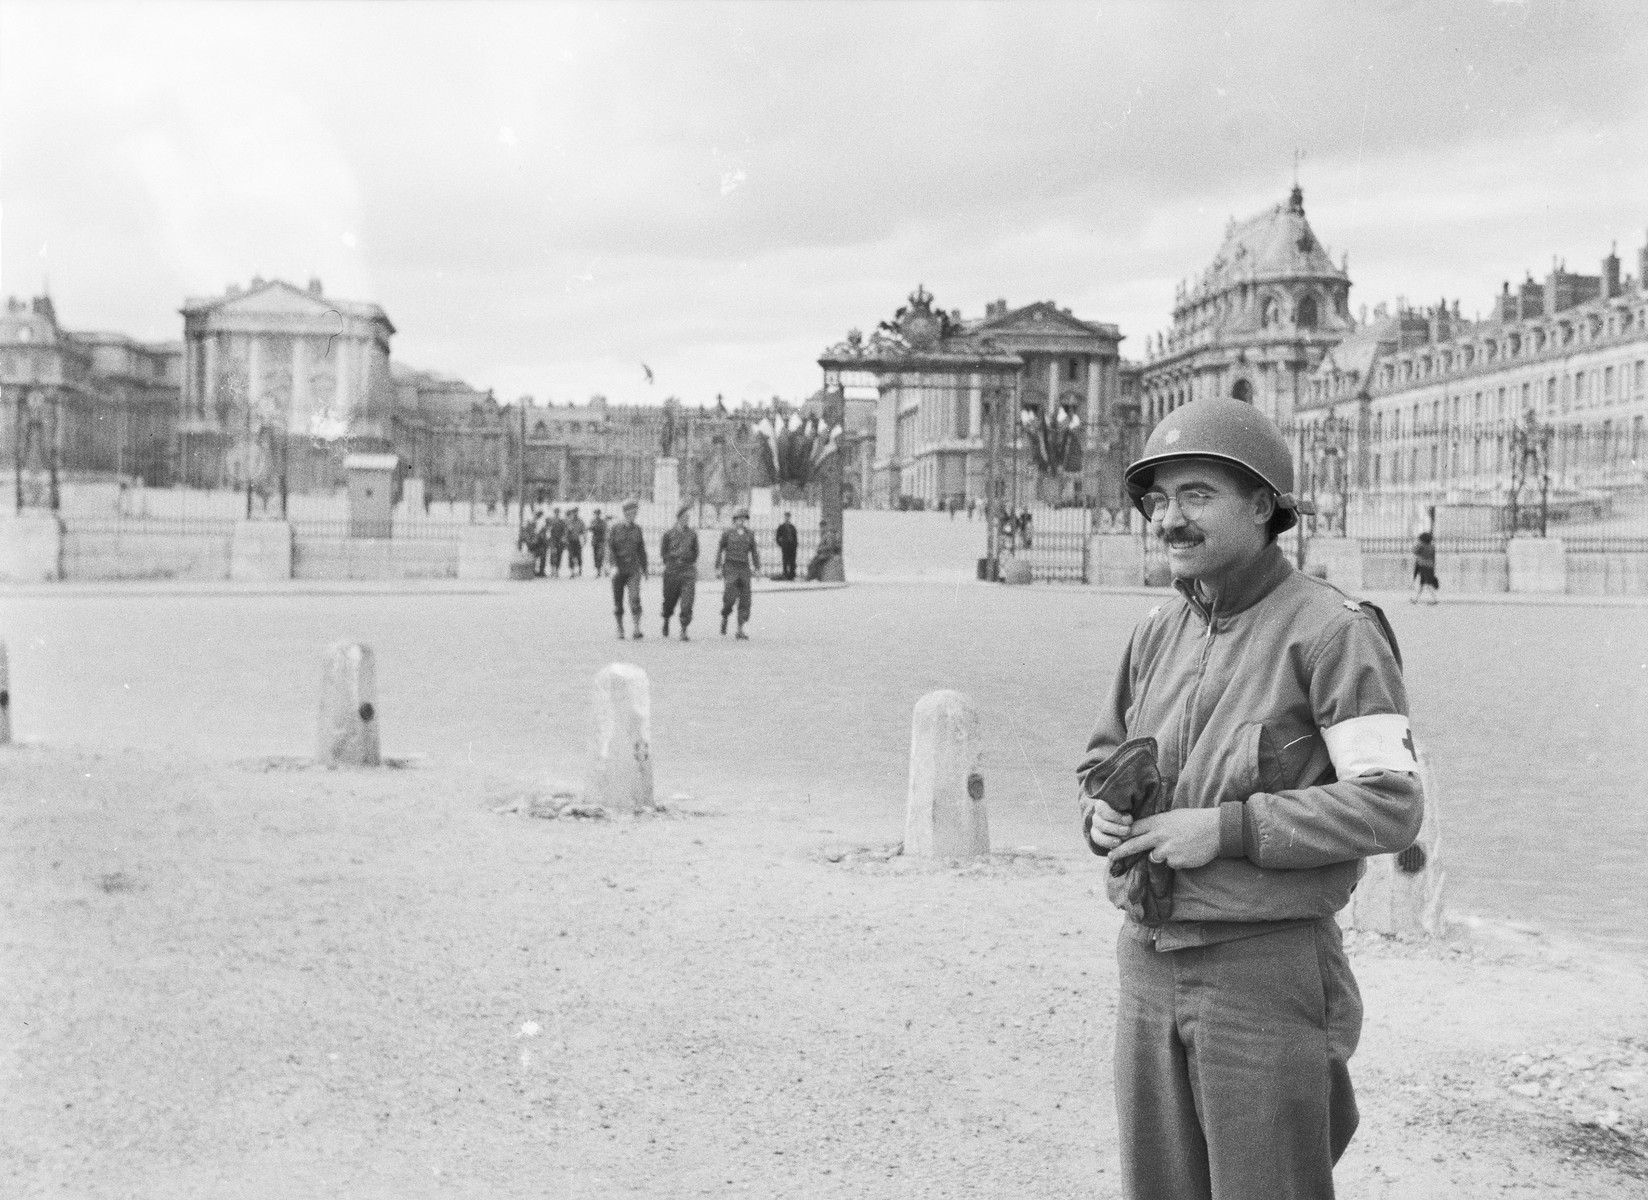 Dr. William G. Birch stands in a city square in Germany.